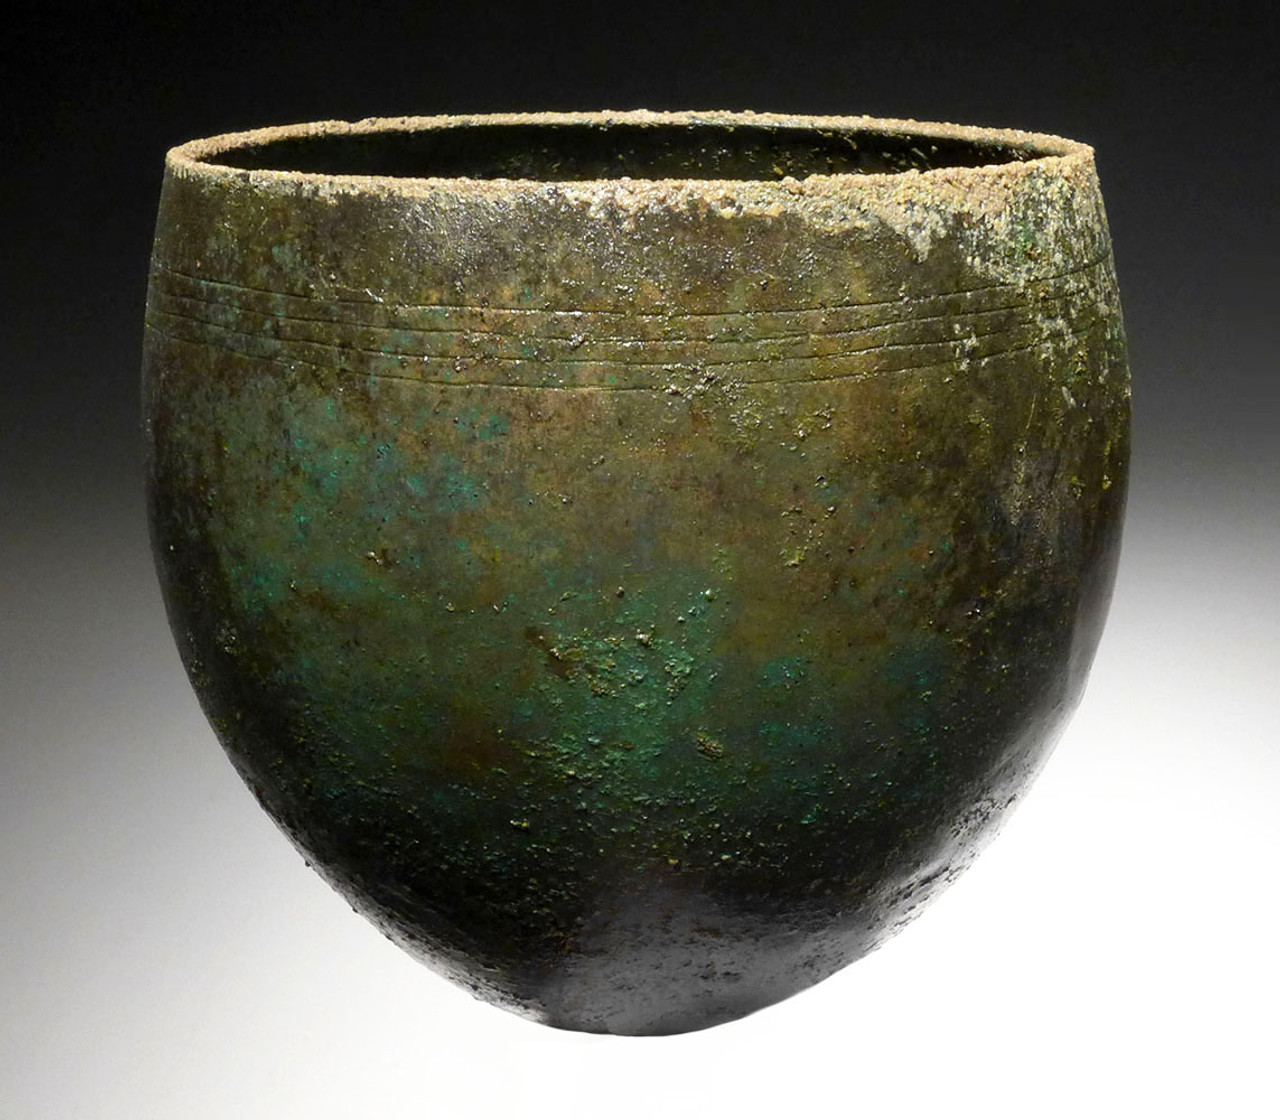 RARE DECORATED ANCIENT BRONZE URN OF THE NEAR EASTERN LURISTAN CULTURE  *LUR166